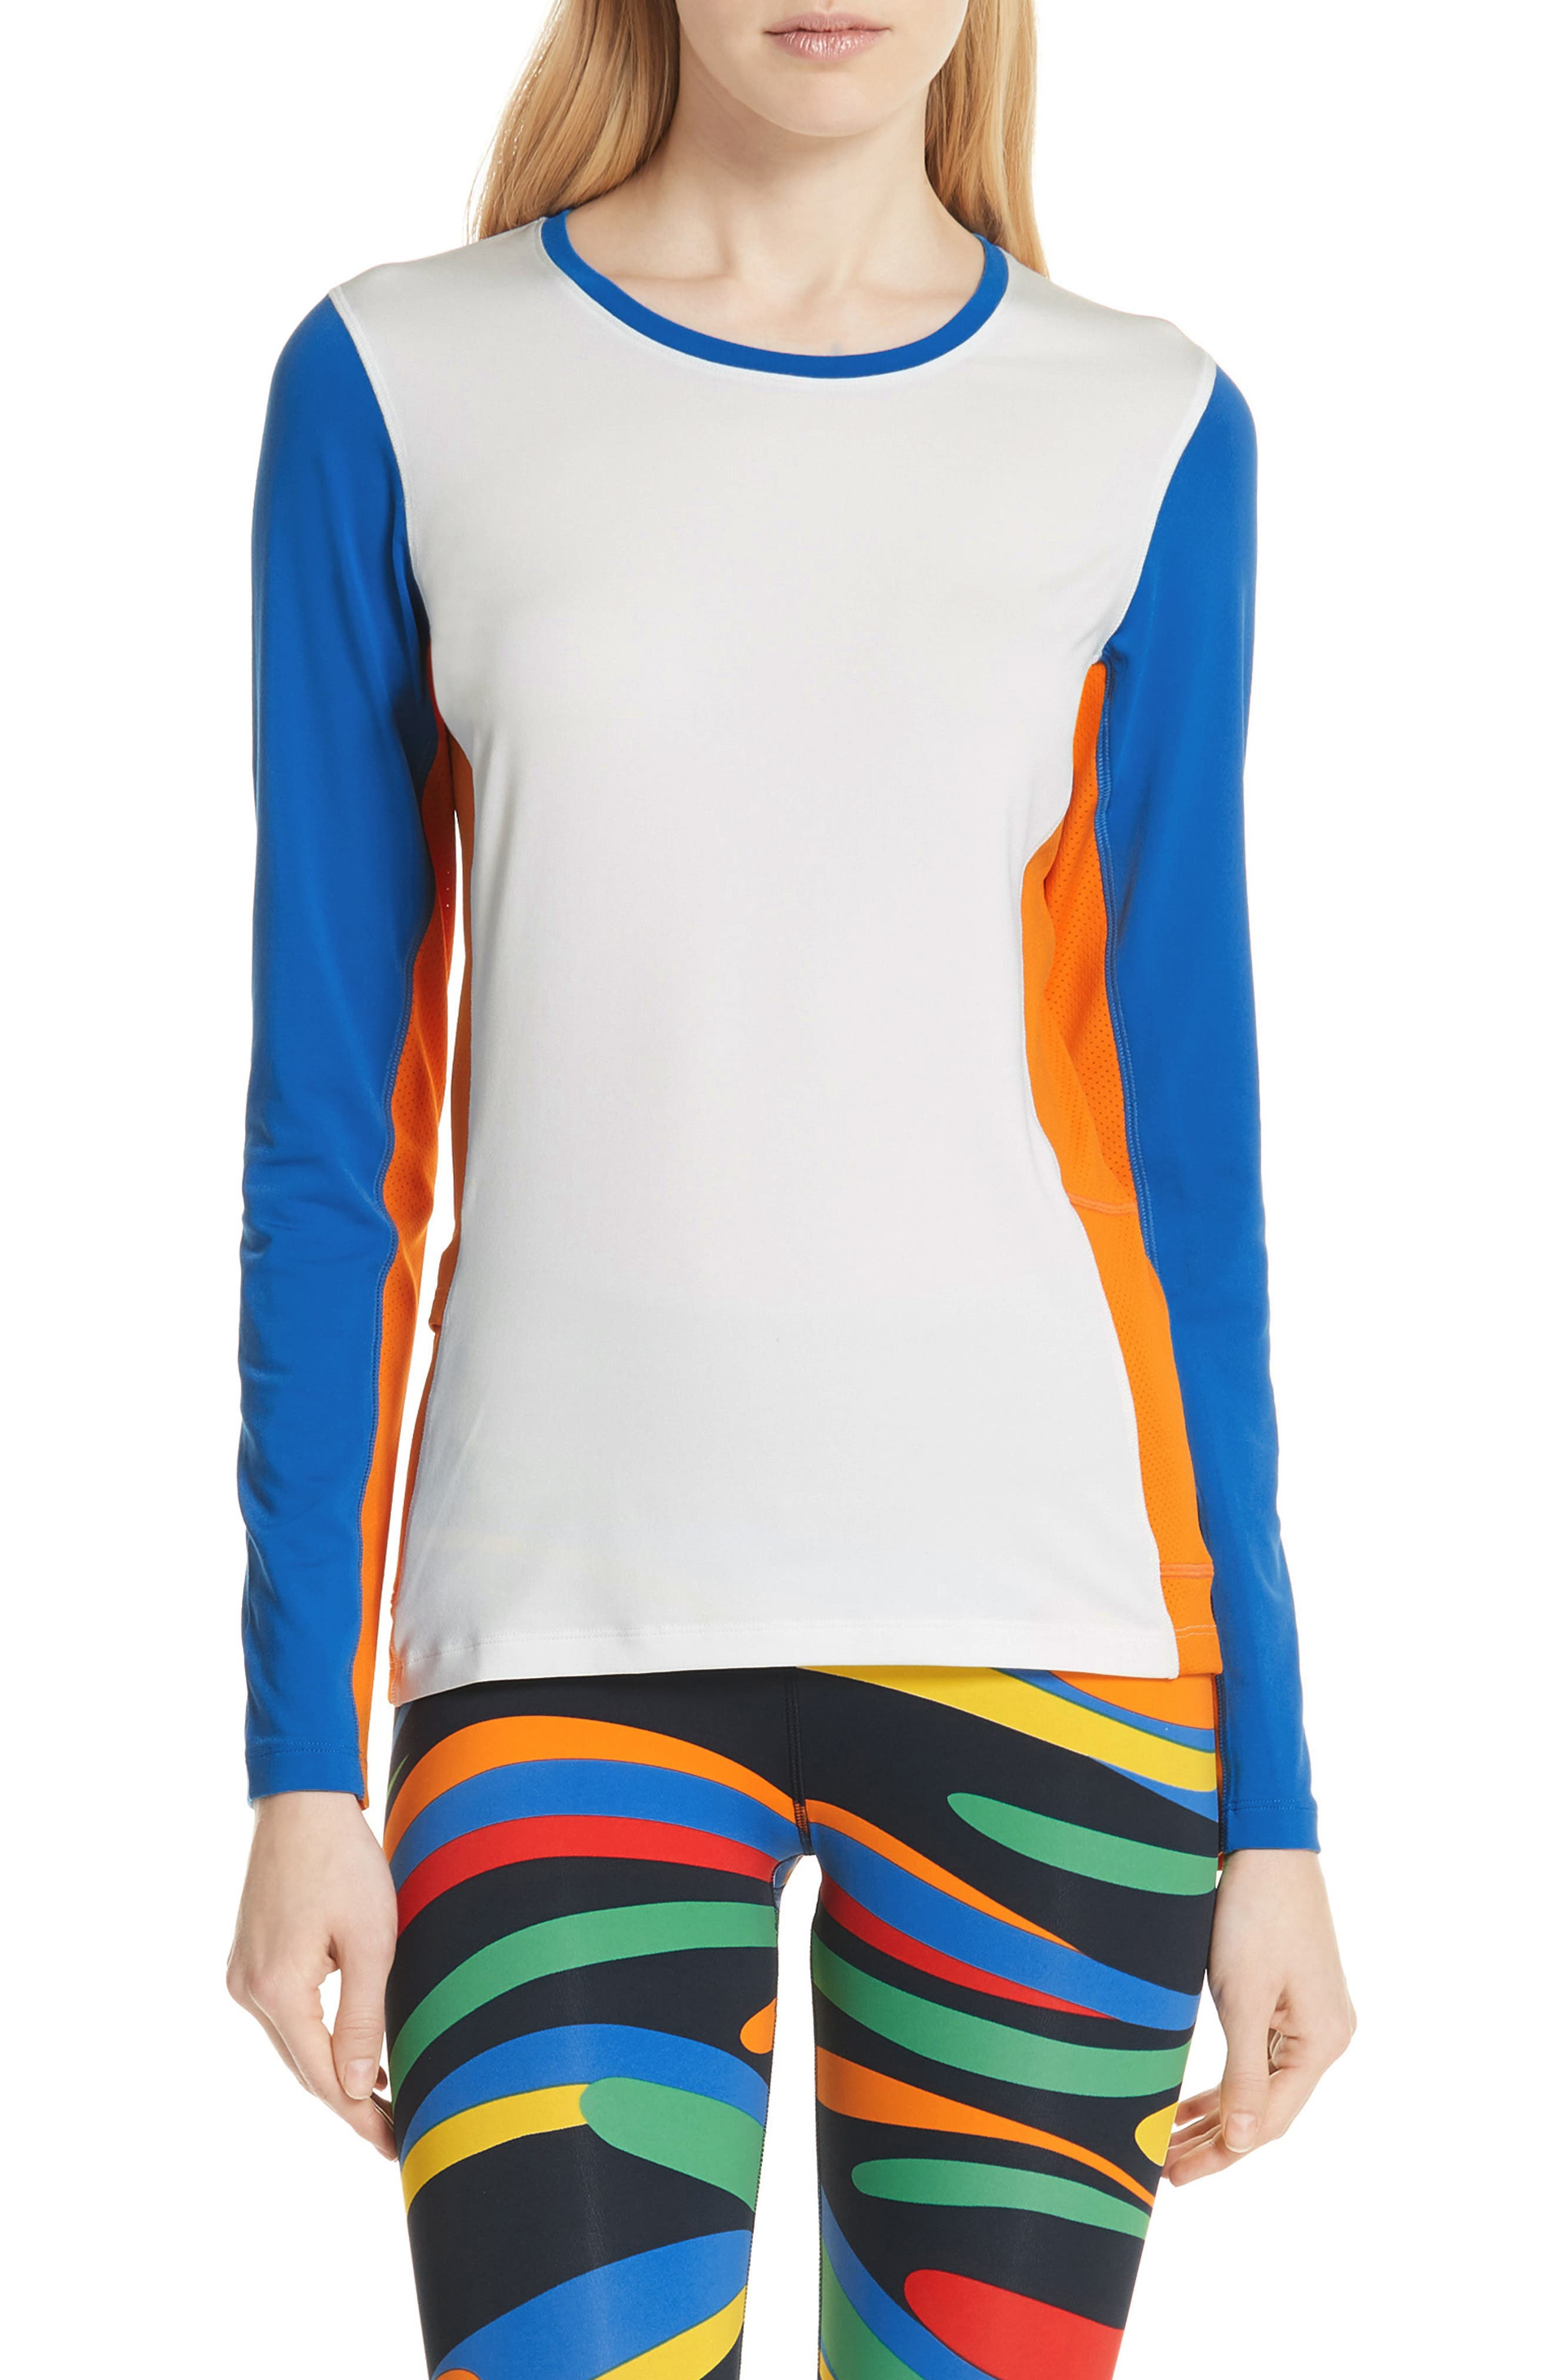 Tory Sport Colorblock Performance Top, White